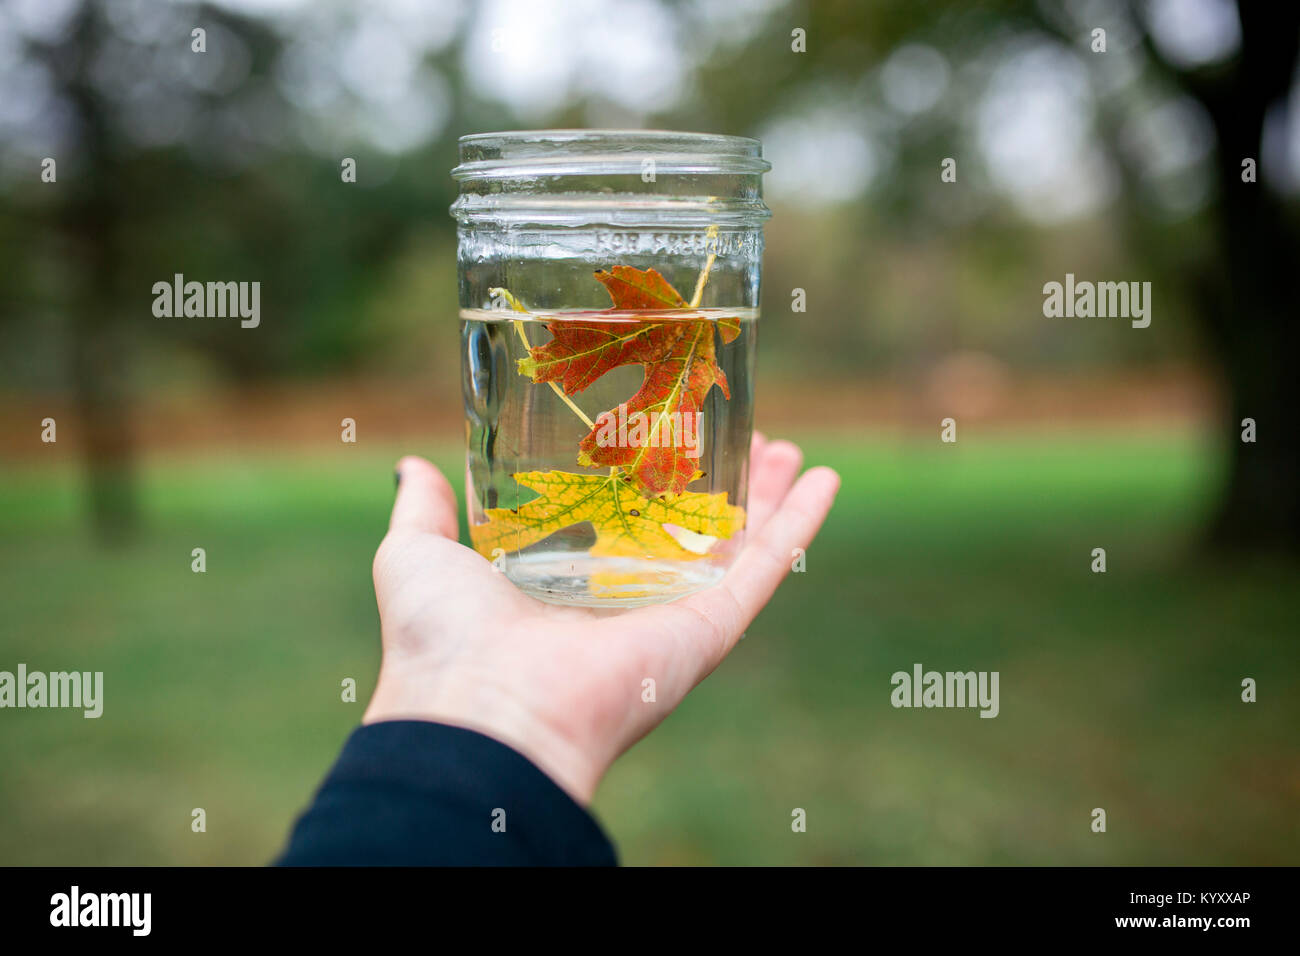 Cropped hand of boy holding maple leaves in water filled jar at backyard - Stock Image